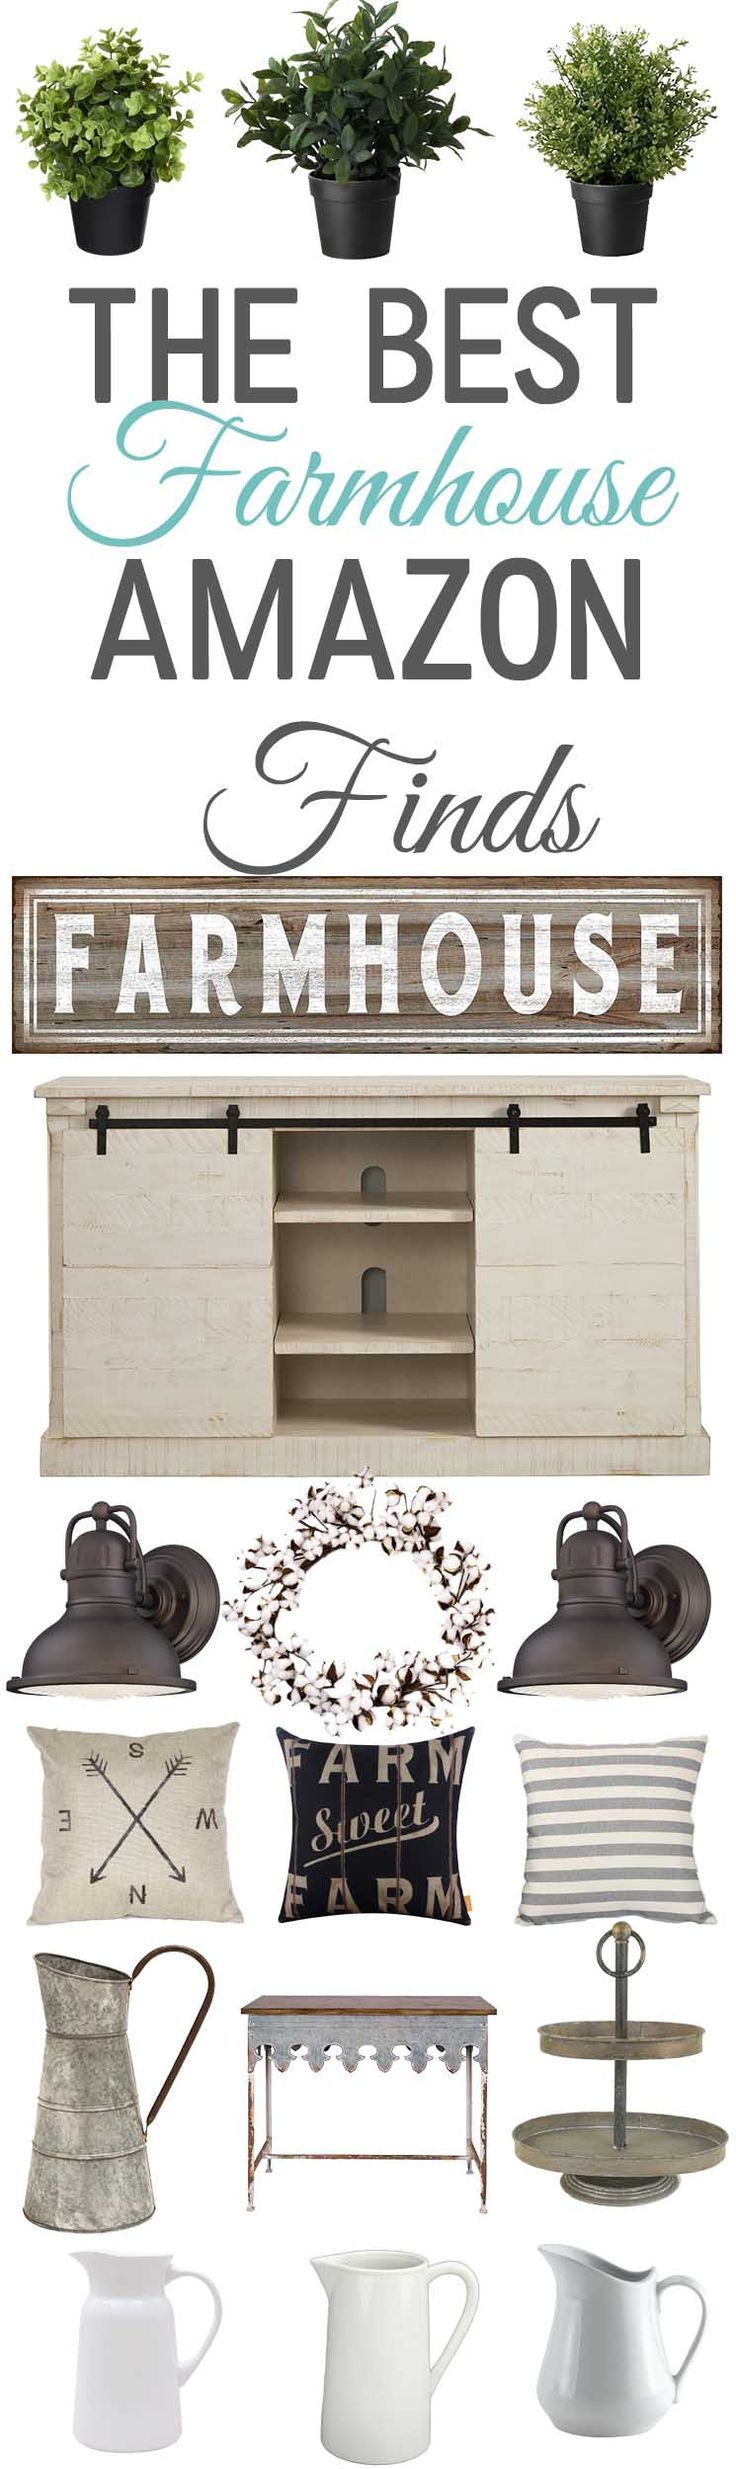 The Best Farmhouse Finds From Amazon